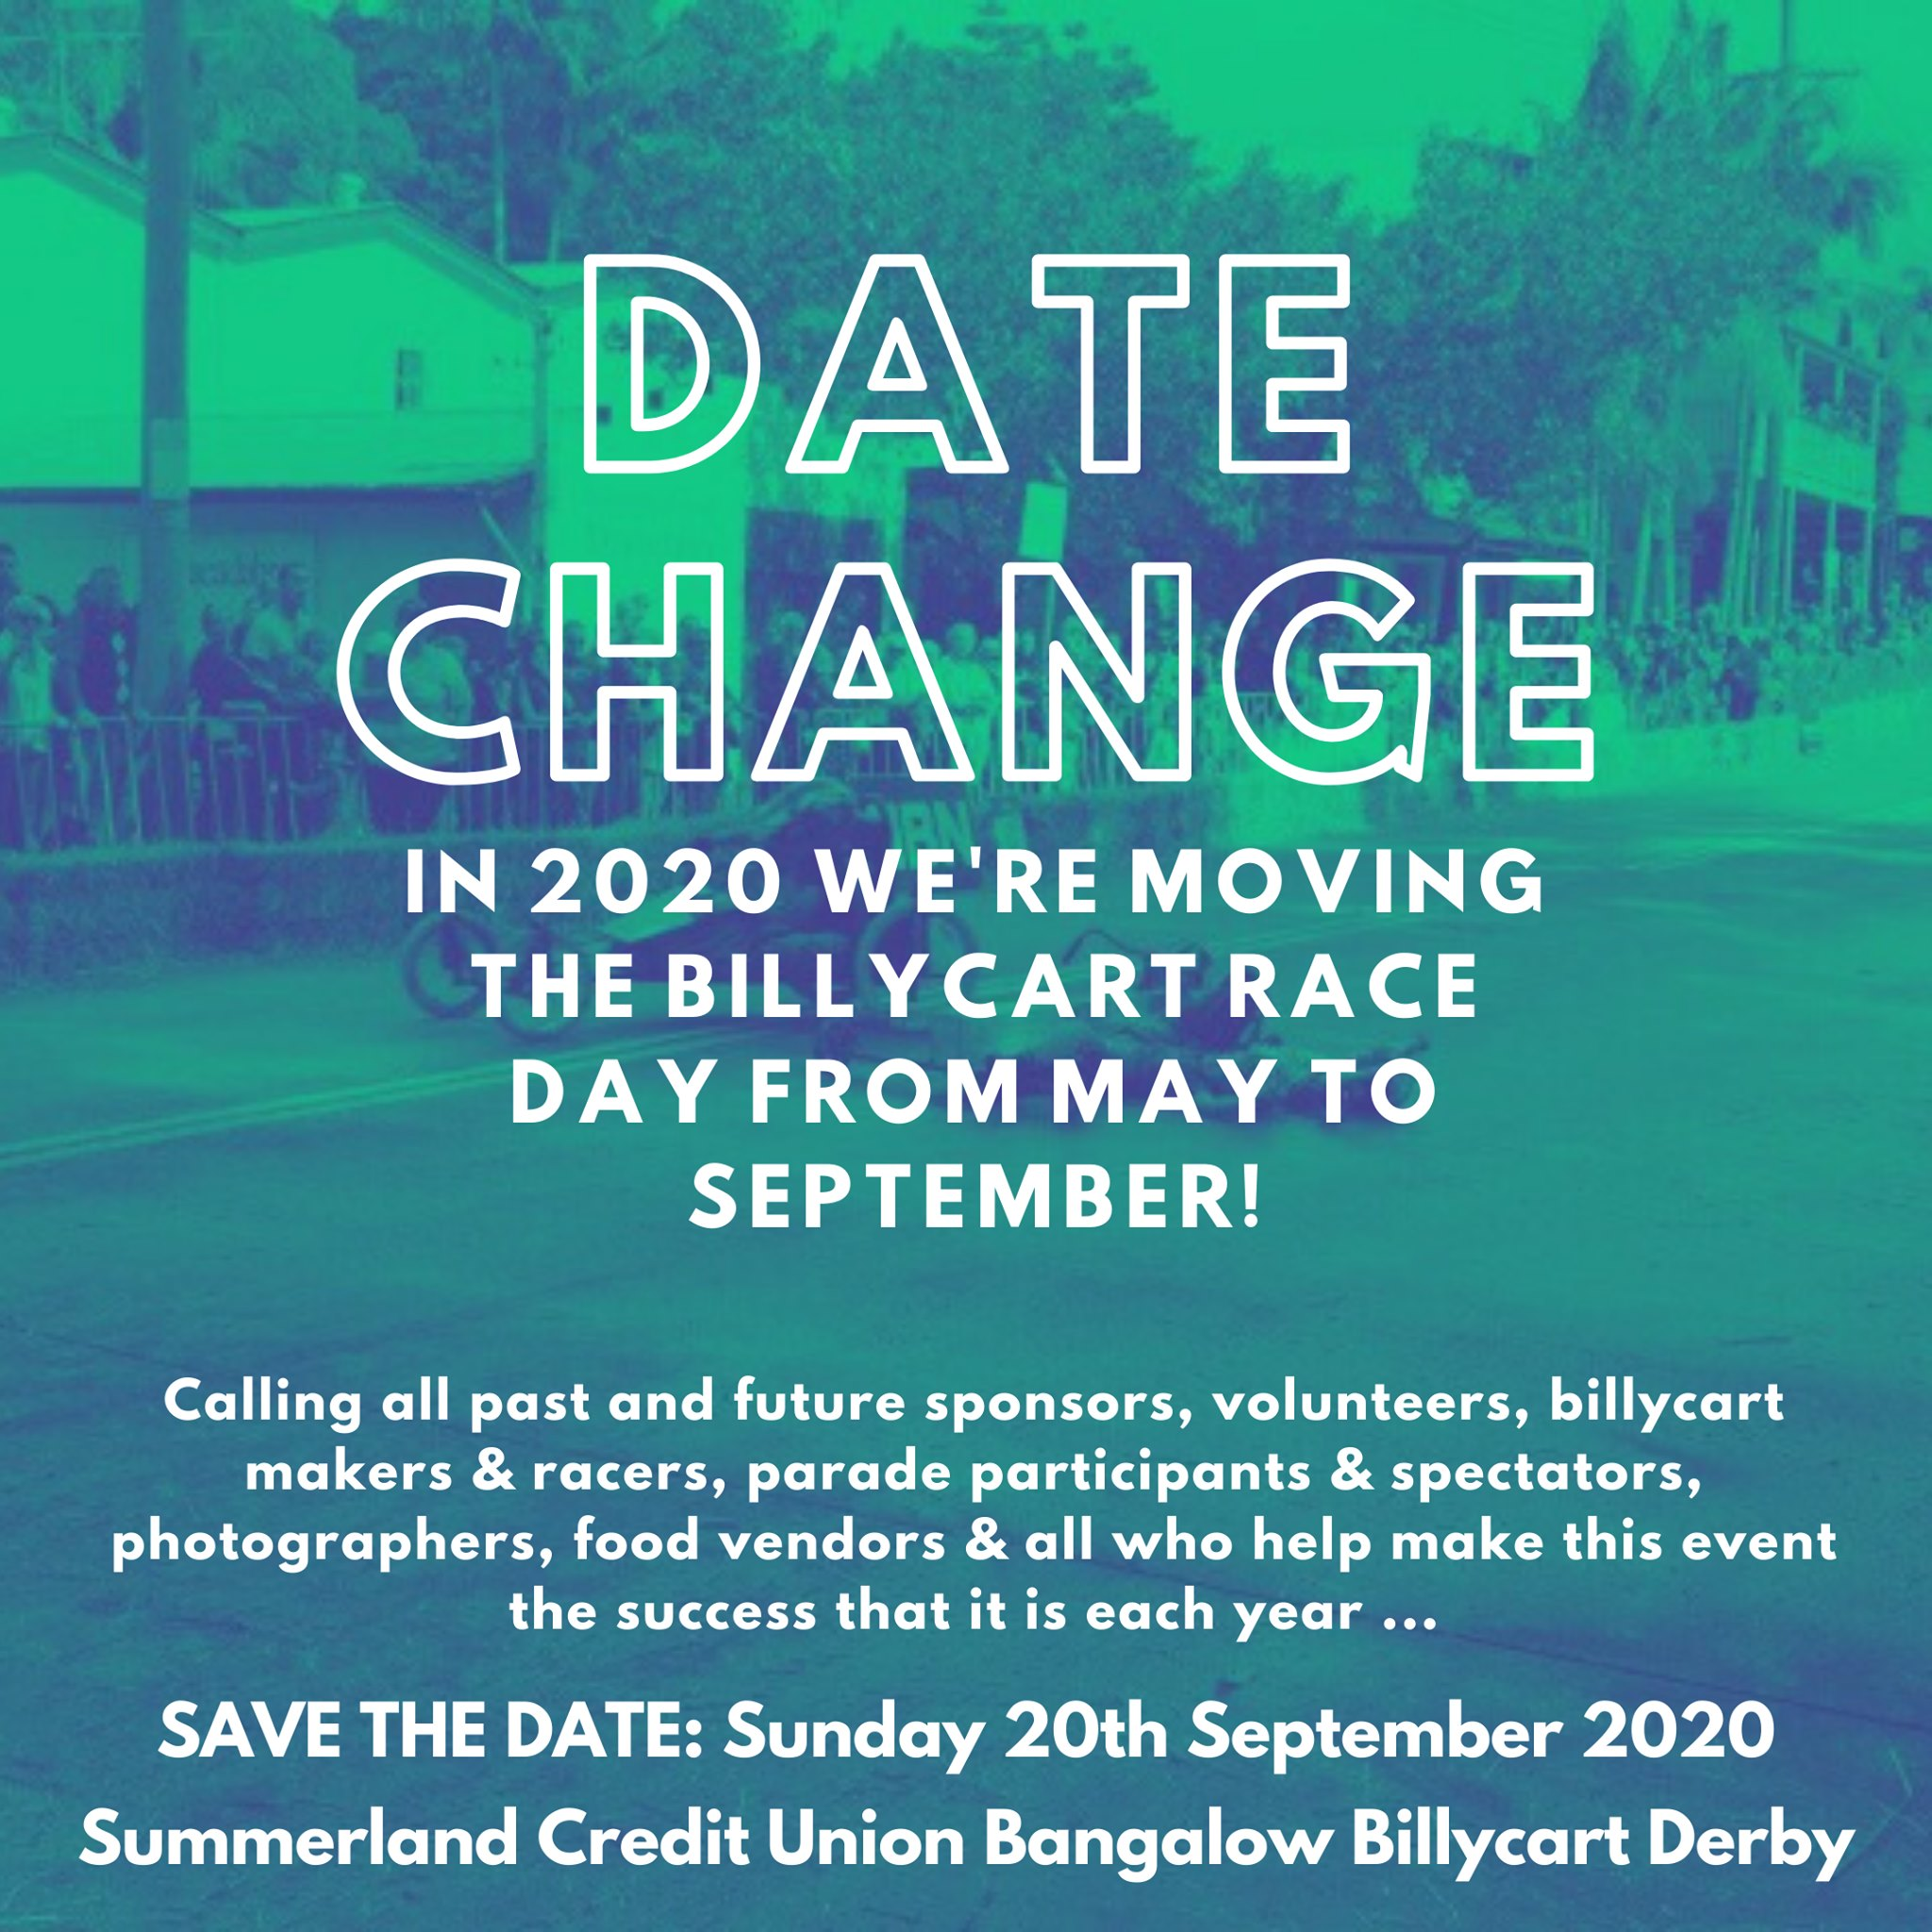 Bangalow Billycart Derby 2020 date change